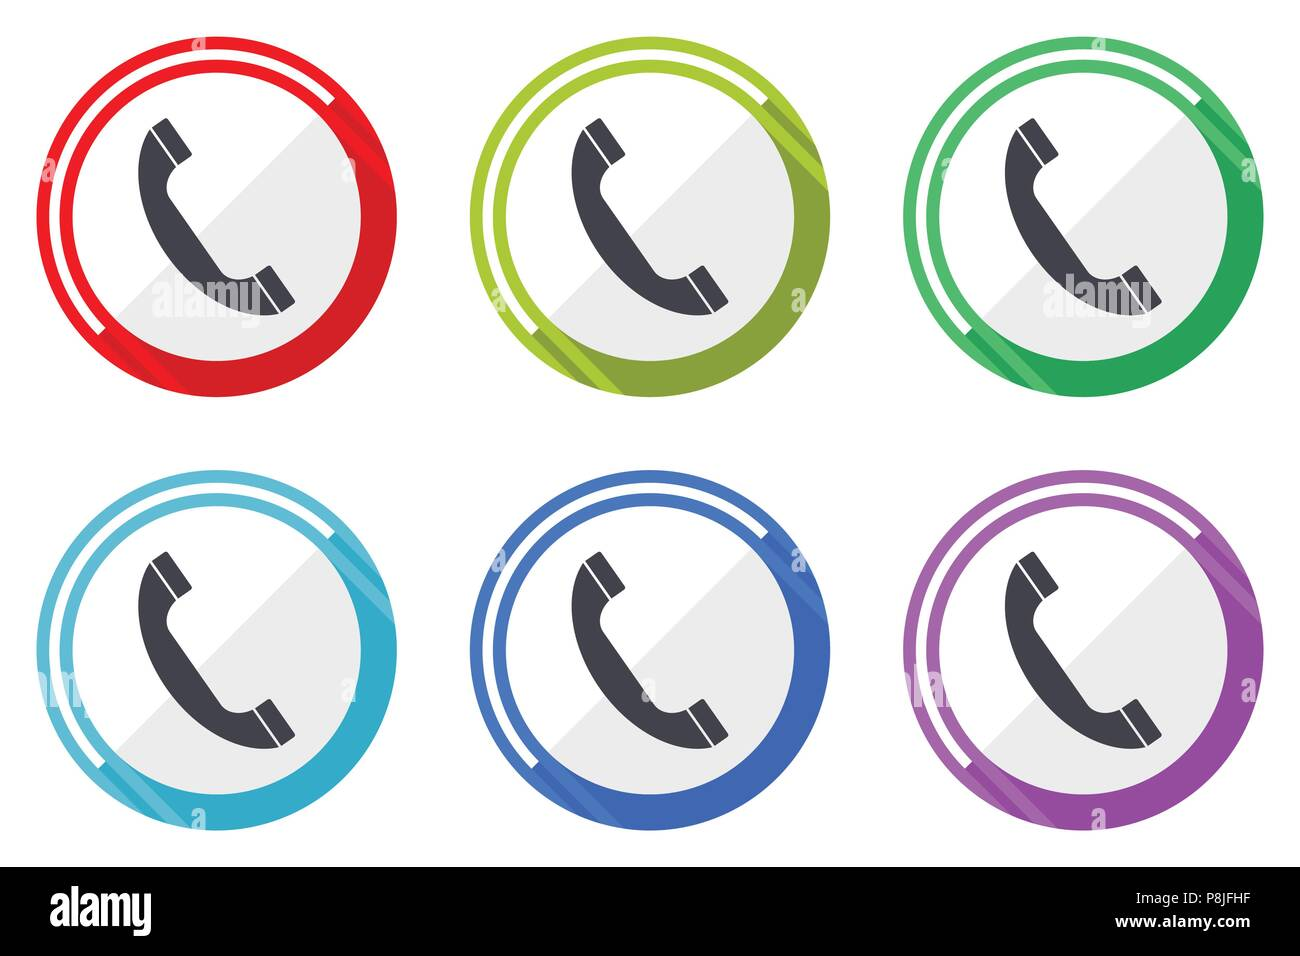 Phone Vector Icons Set Of Colorful Flat Design Internet Symbols On